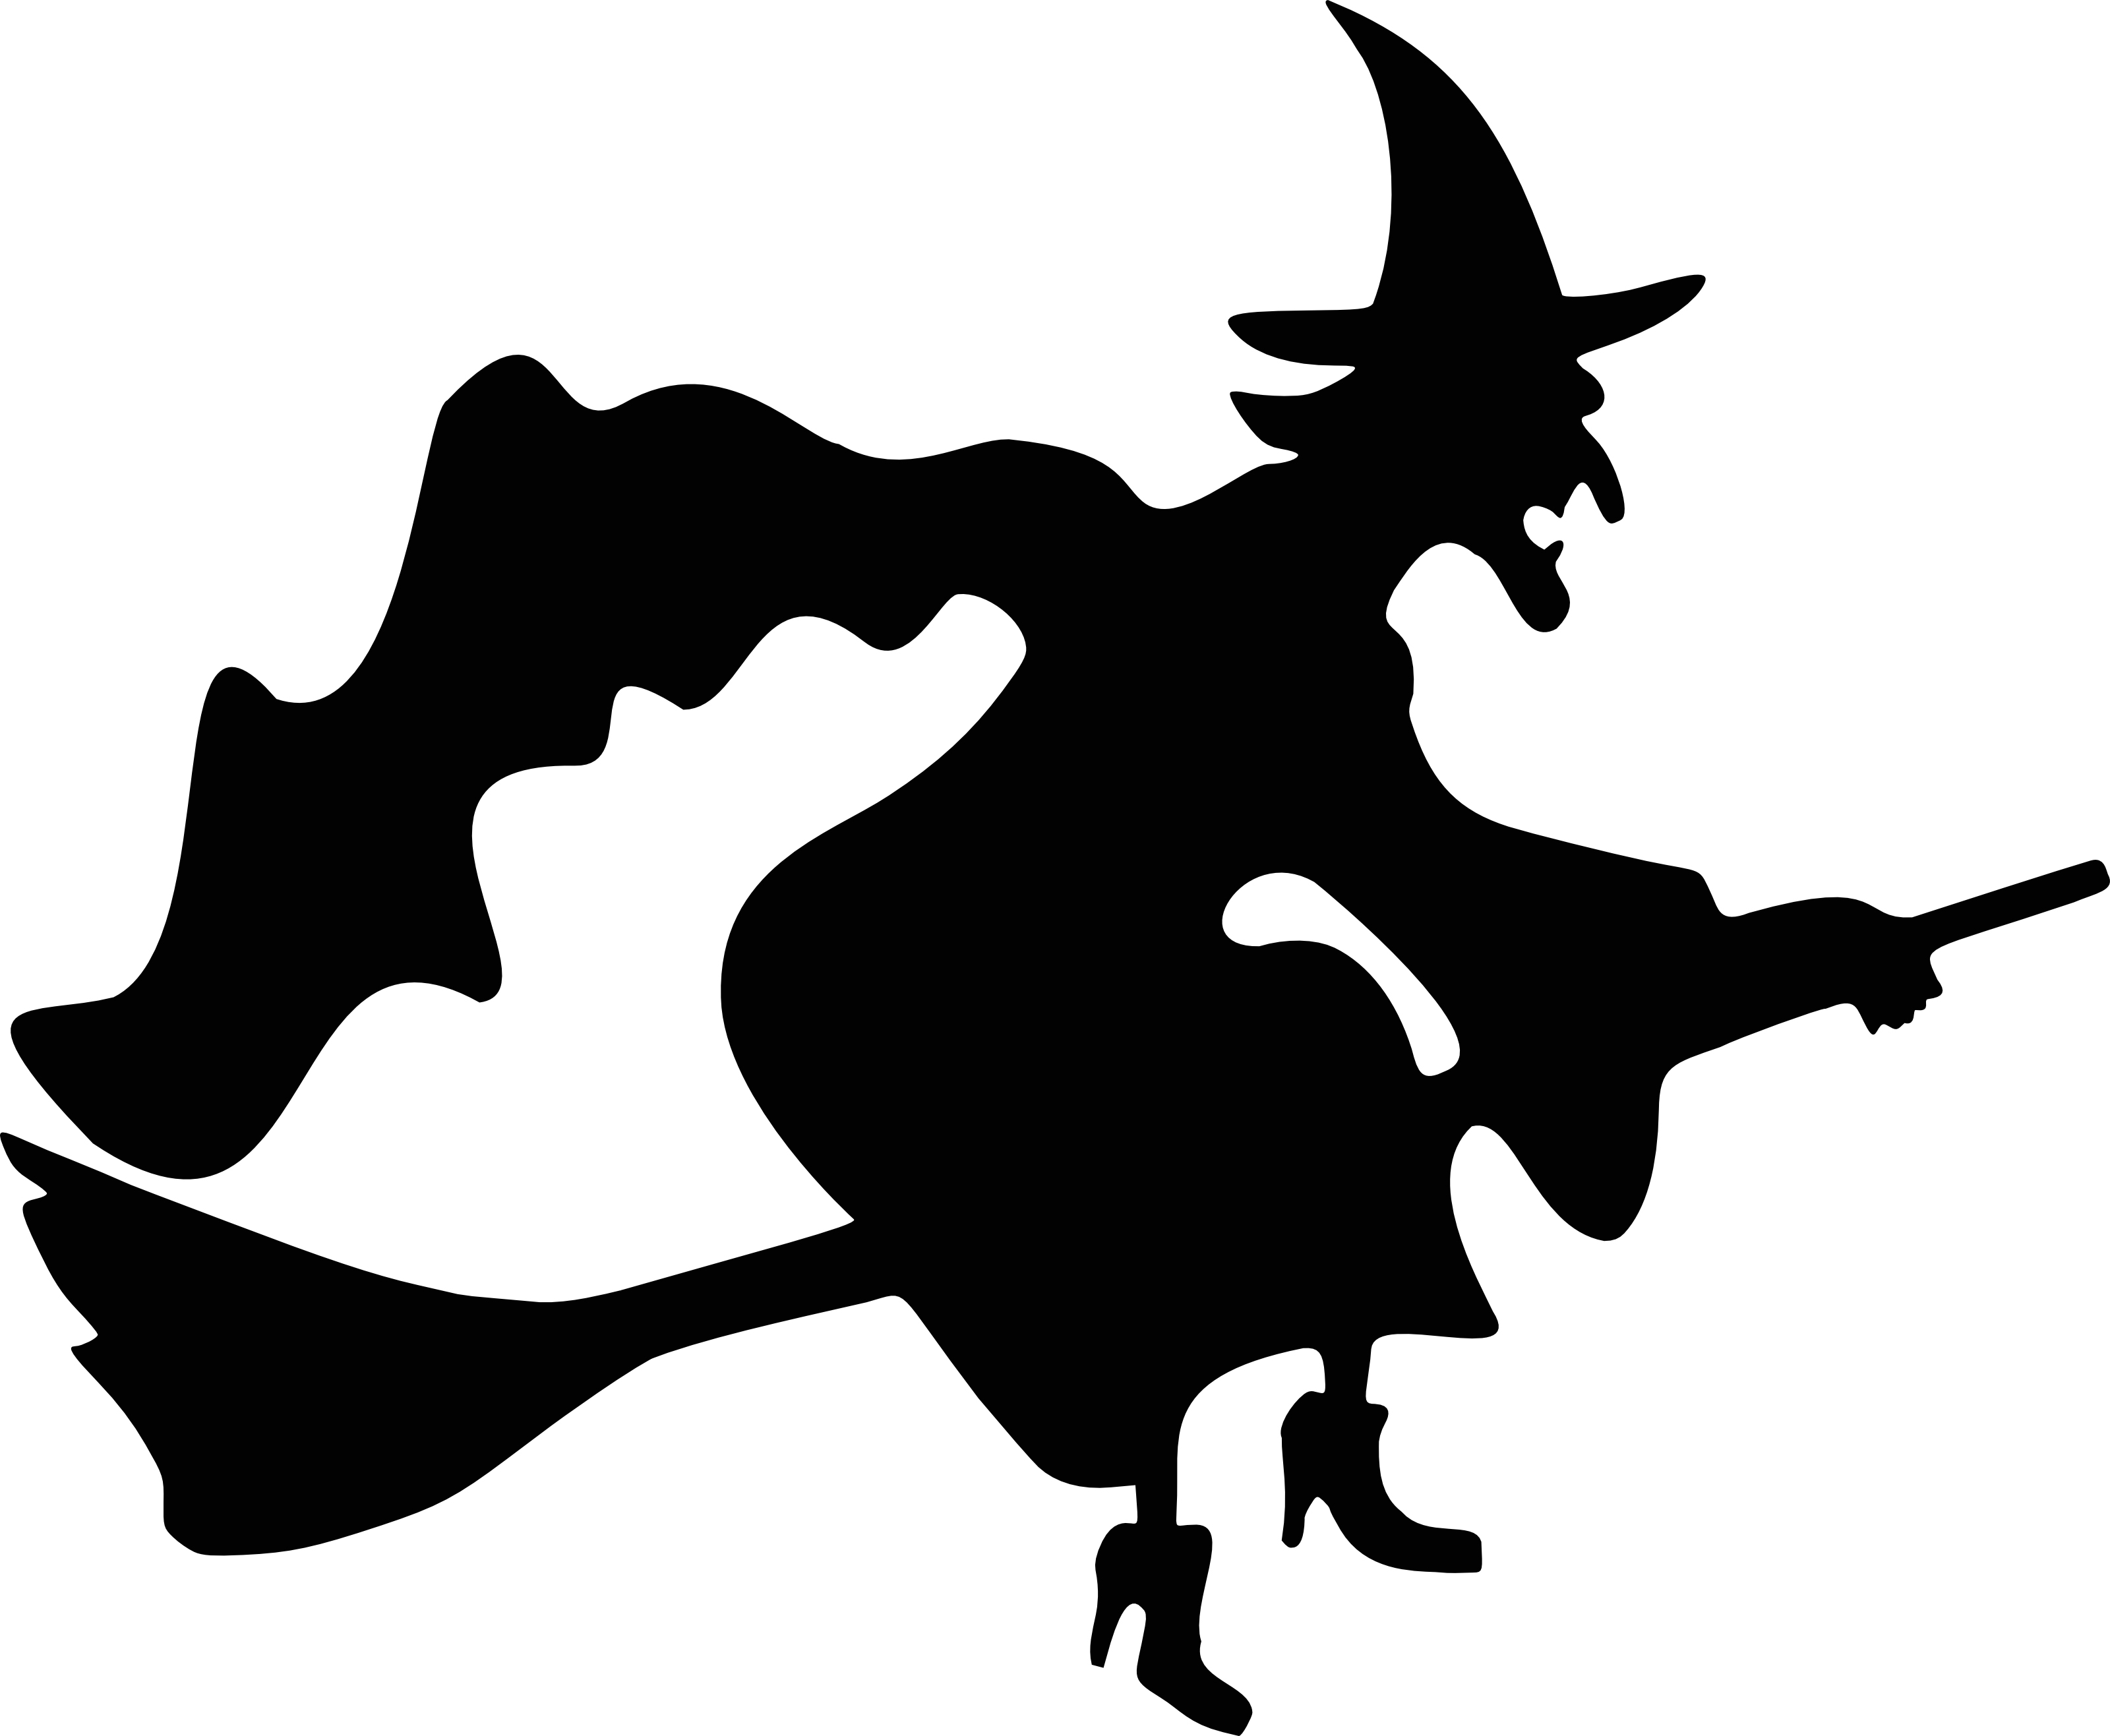 Free Halloween Silhouette Png, Download Free Clip Art, Free